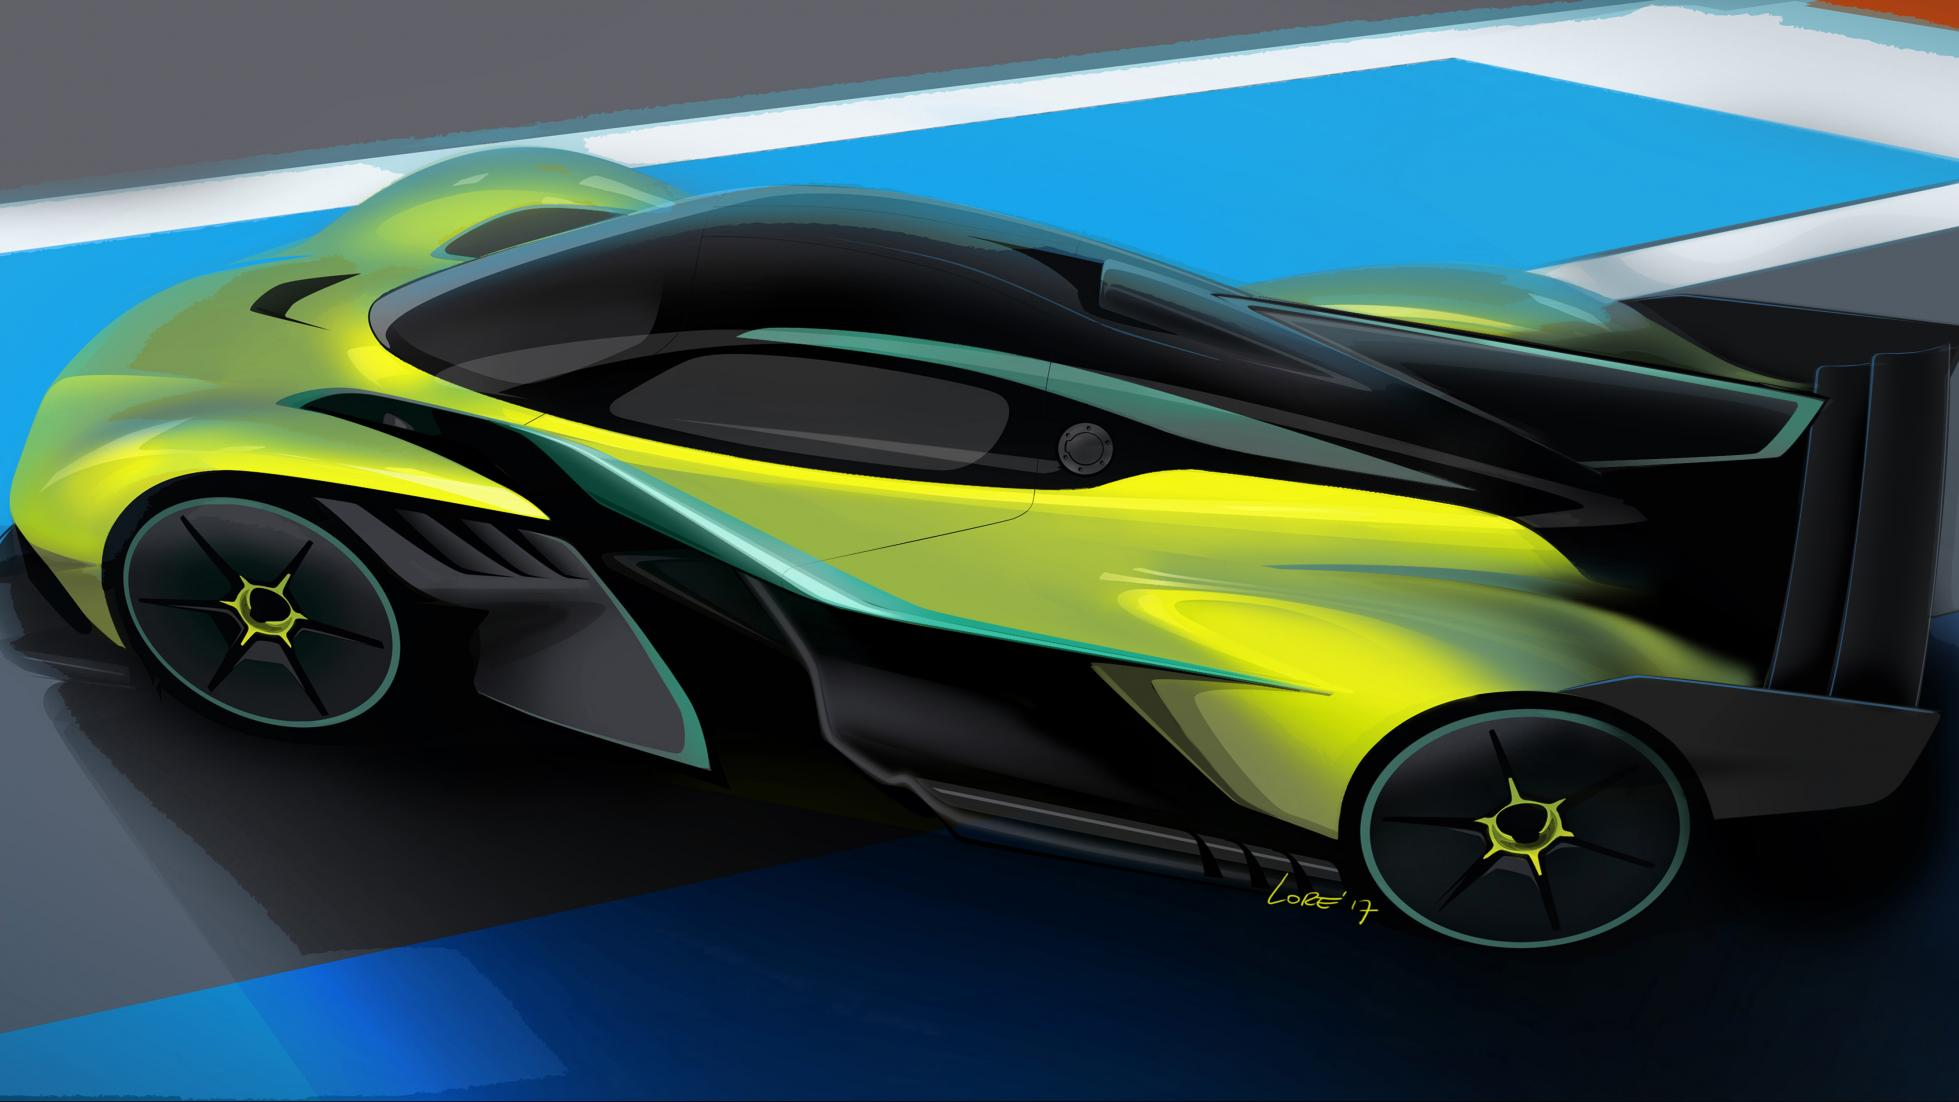 Aston Martin Valkyrie gets more extreme AMR Pro version